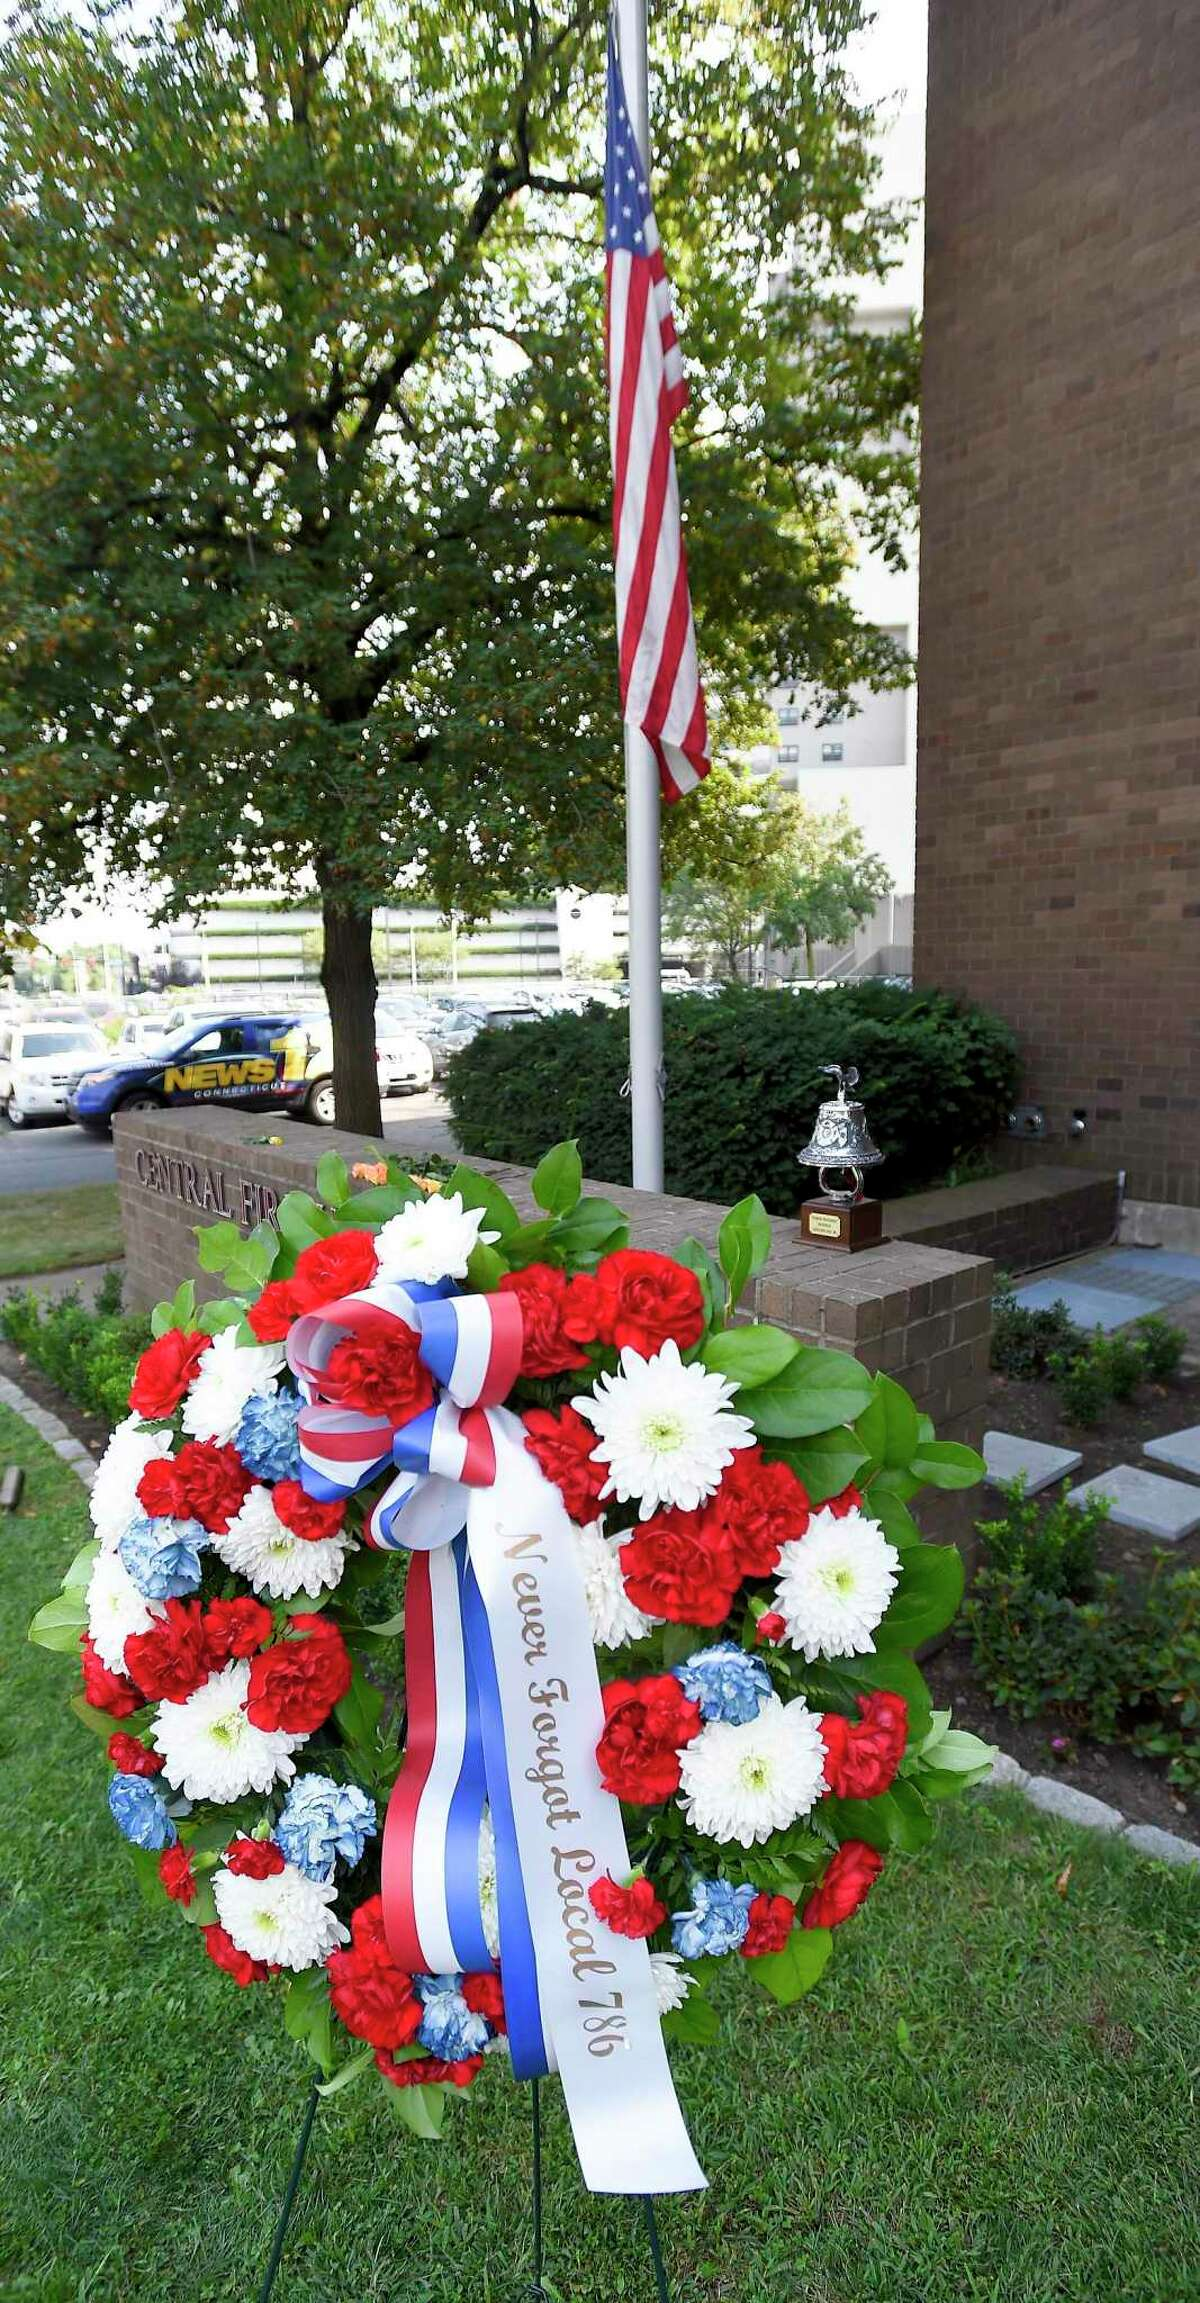 A memorial wreath to honor victims is placed following a 9/11 Remembrance Ceremony on Sept. 11, 2019 at the Central Fire Headquarters in Stamford, Connecticut.